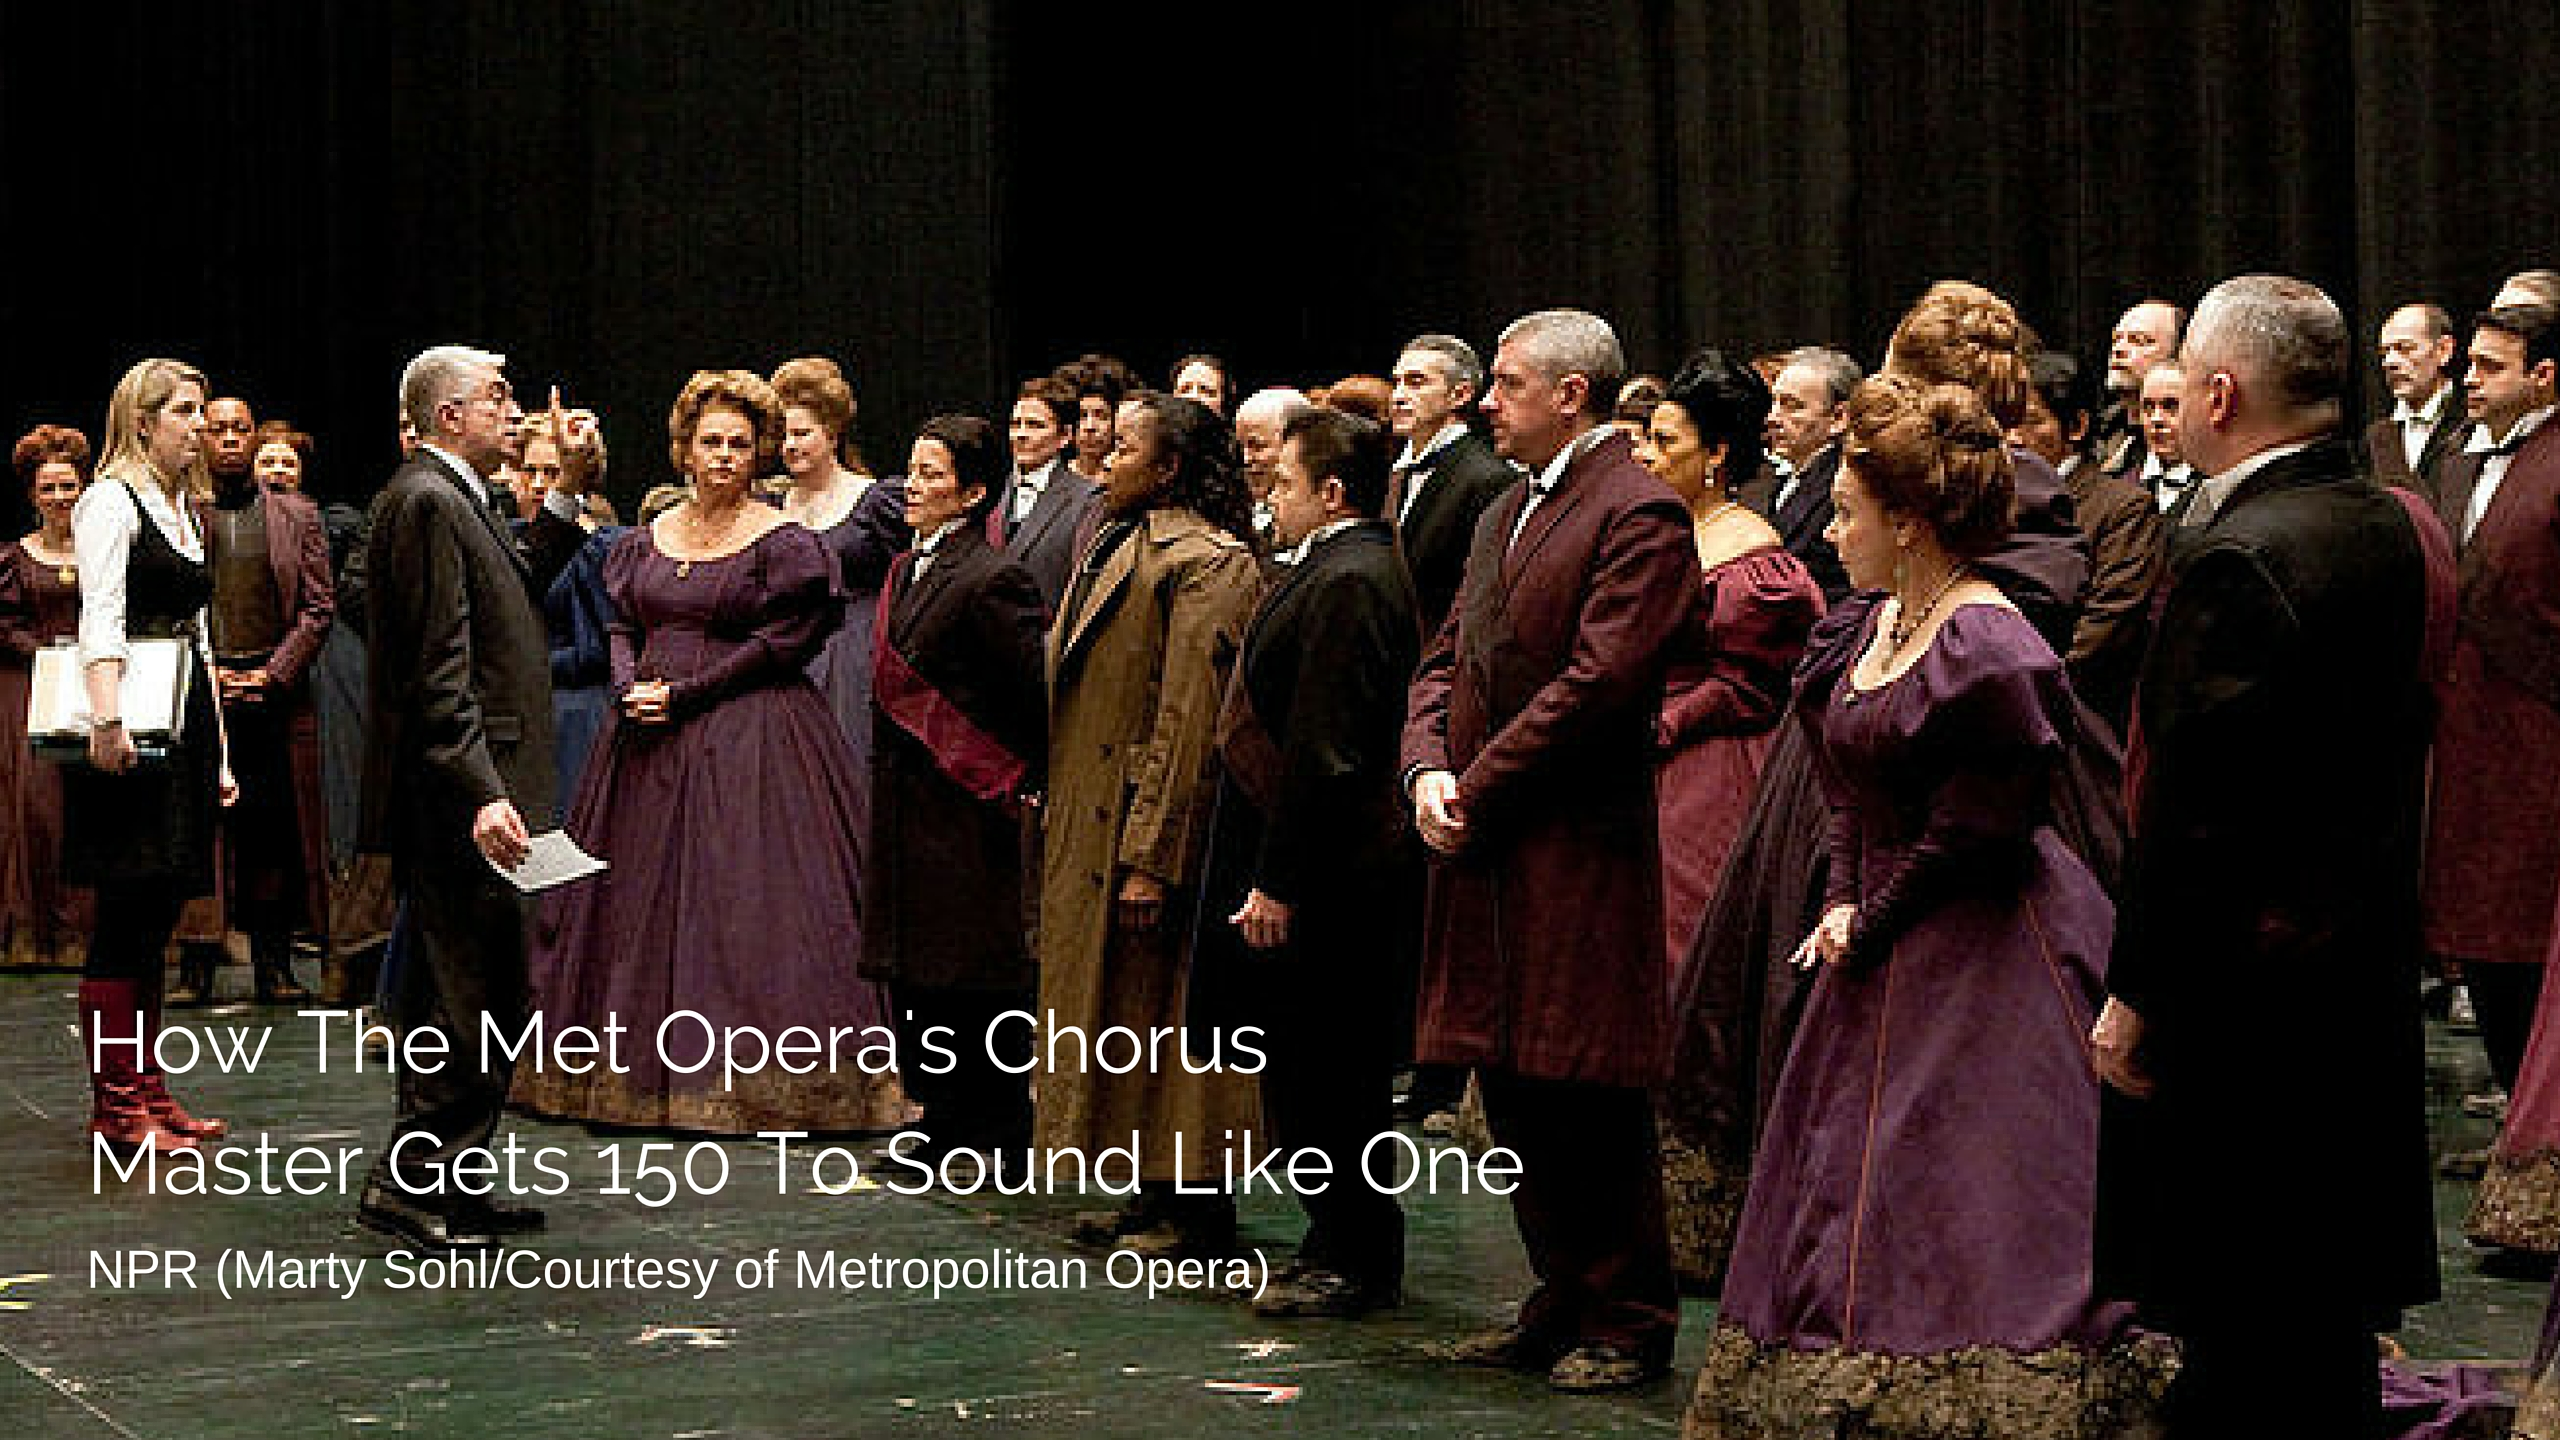 How The Met Opera's Chorus Master Gets 150 To Sound Like One